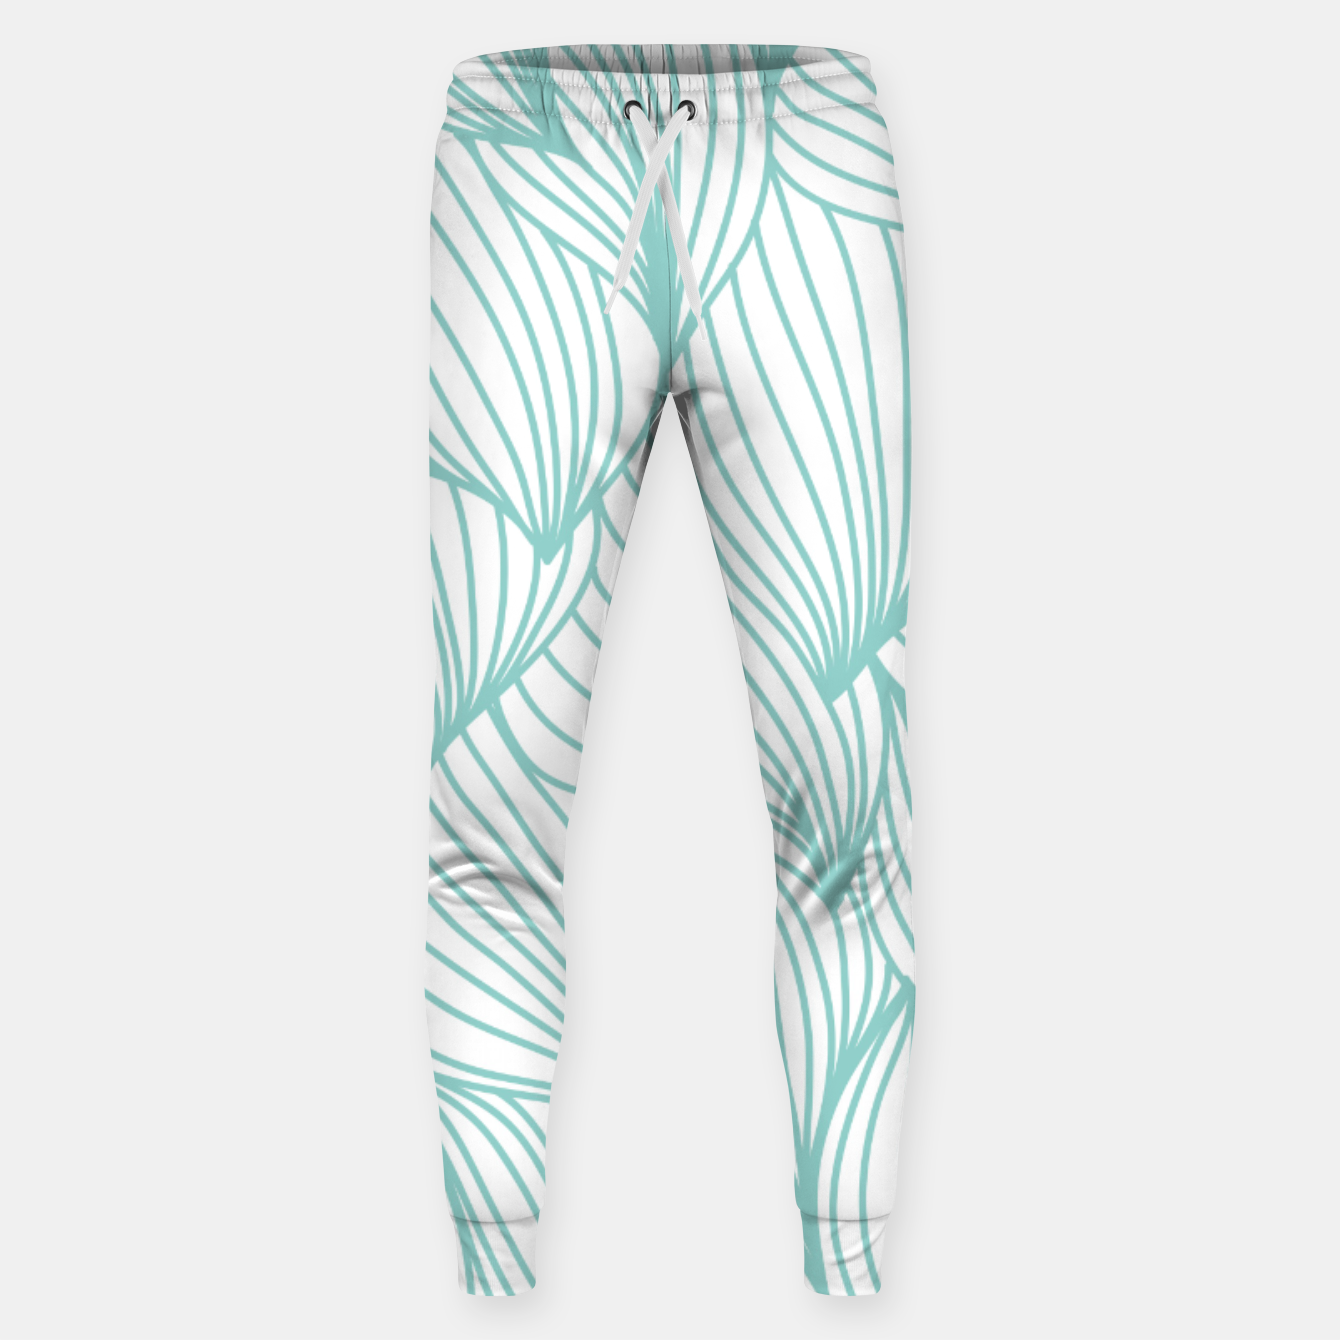 Foto Minimal Turquoise White Waves Delicate Natural Artist Sweatpants - Live Heroes